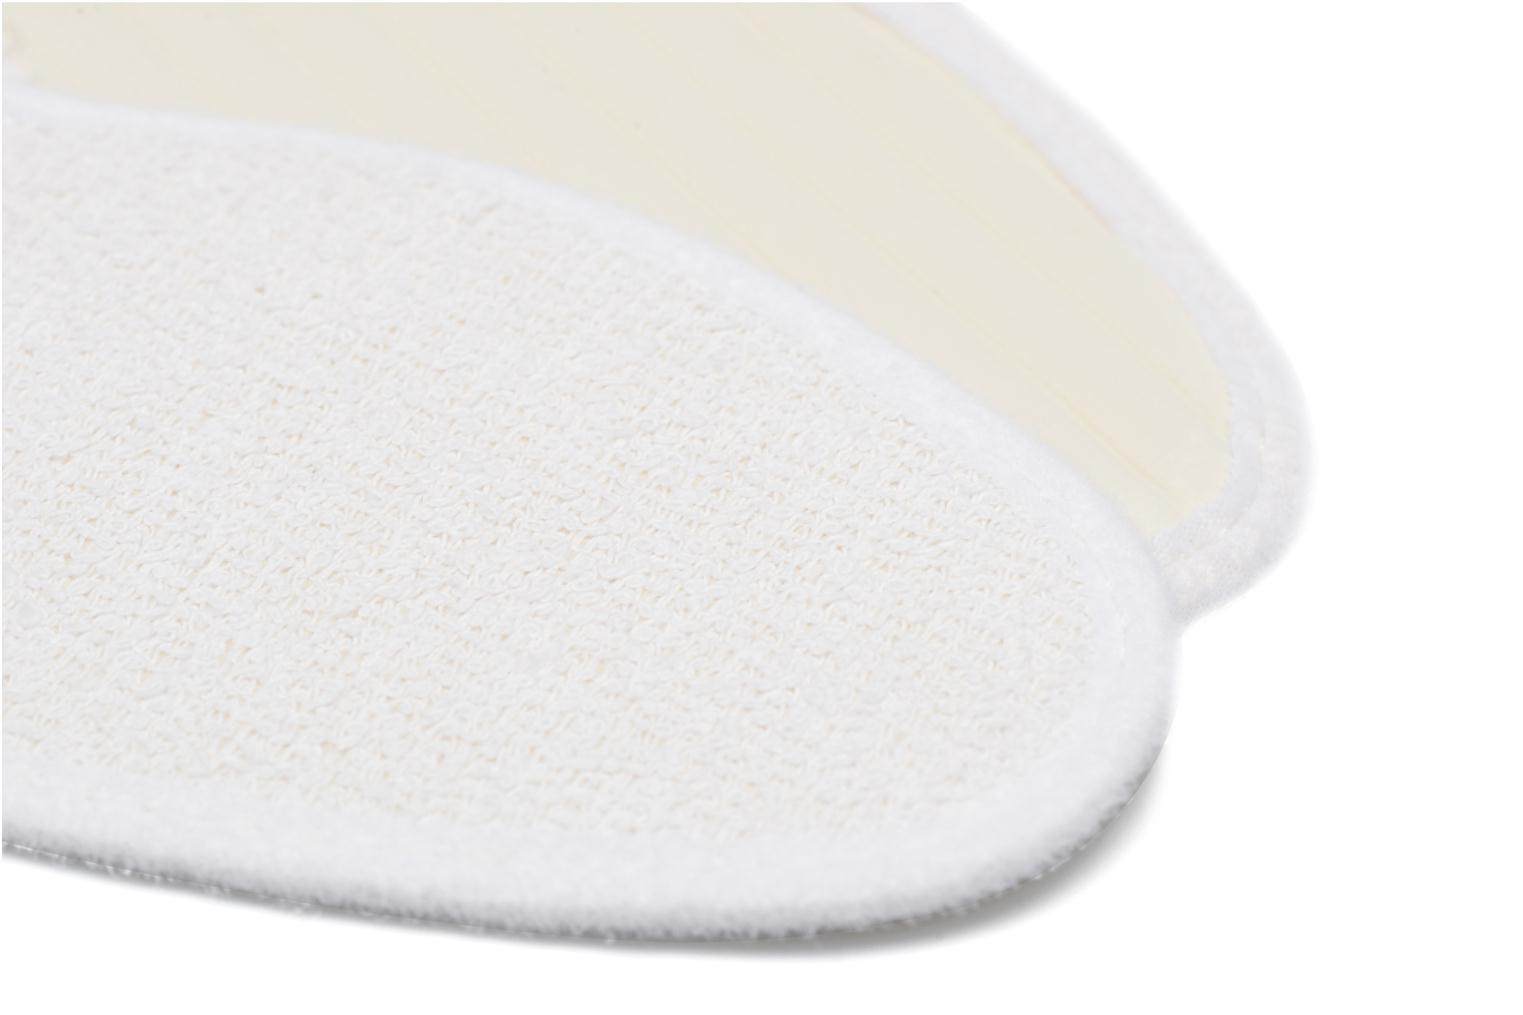 Insoles Sarenza care Semelle Bouclette Coton Femme White view from above